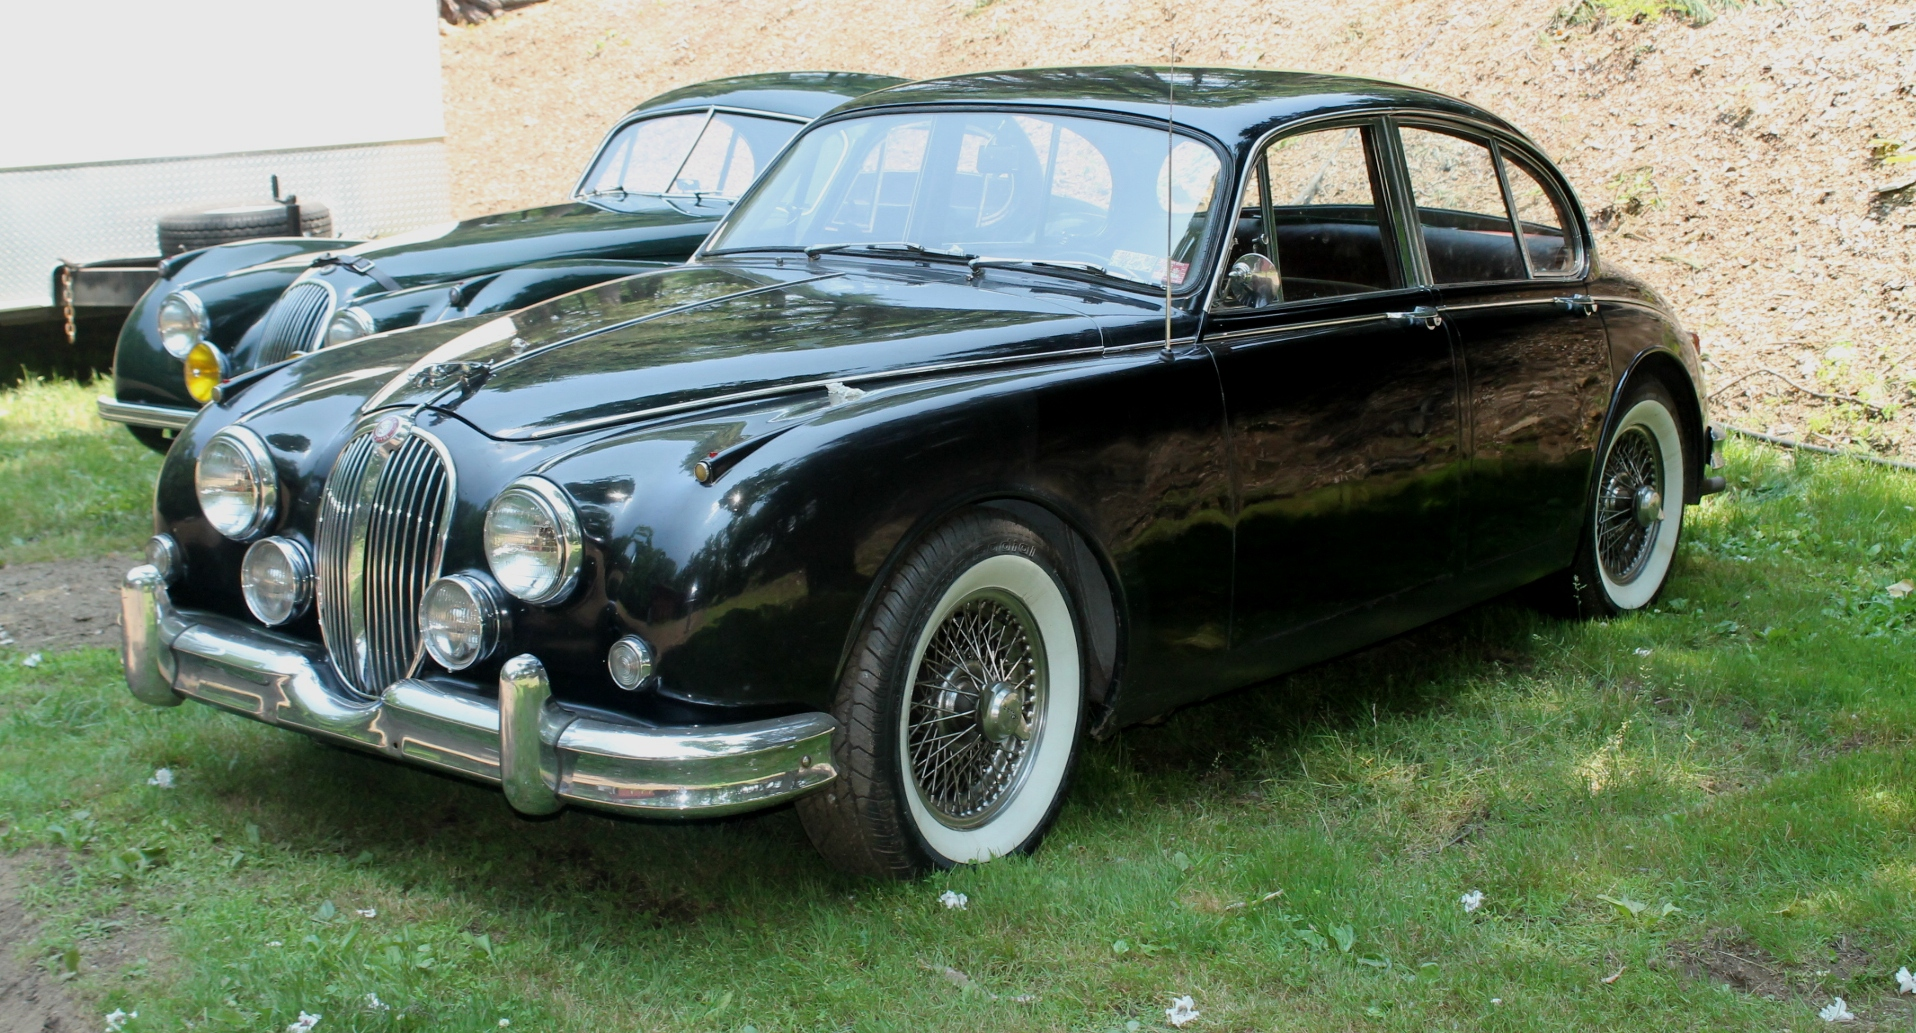 price classifieds chrome wire transmission hemmings cars news jaguar manual sale and mk motor of for wheels